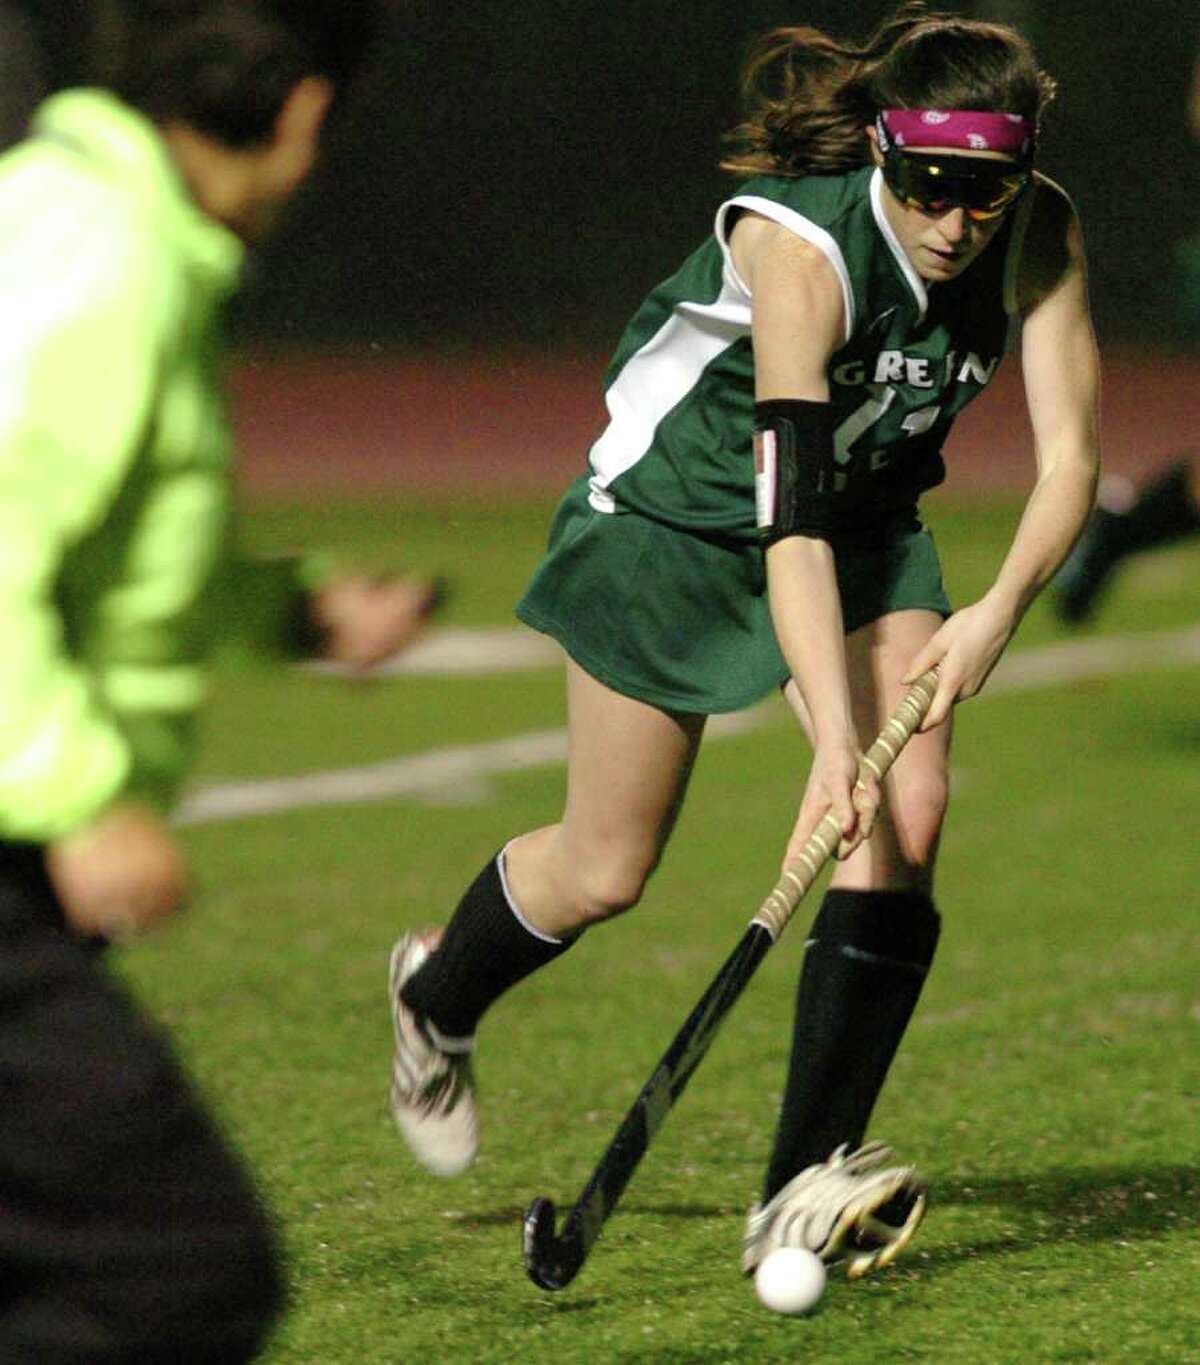 New Milford's 11, Olivia Monteiro competes with Glastonbury during the field hockey game at Watertown High School Nov. 16, 2010.